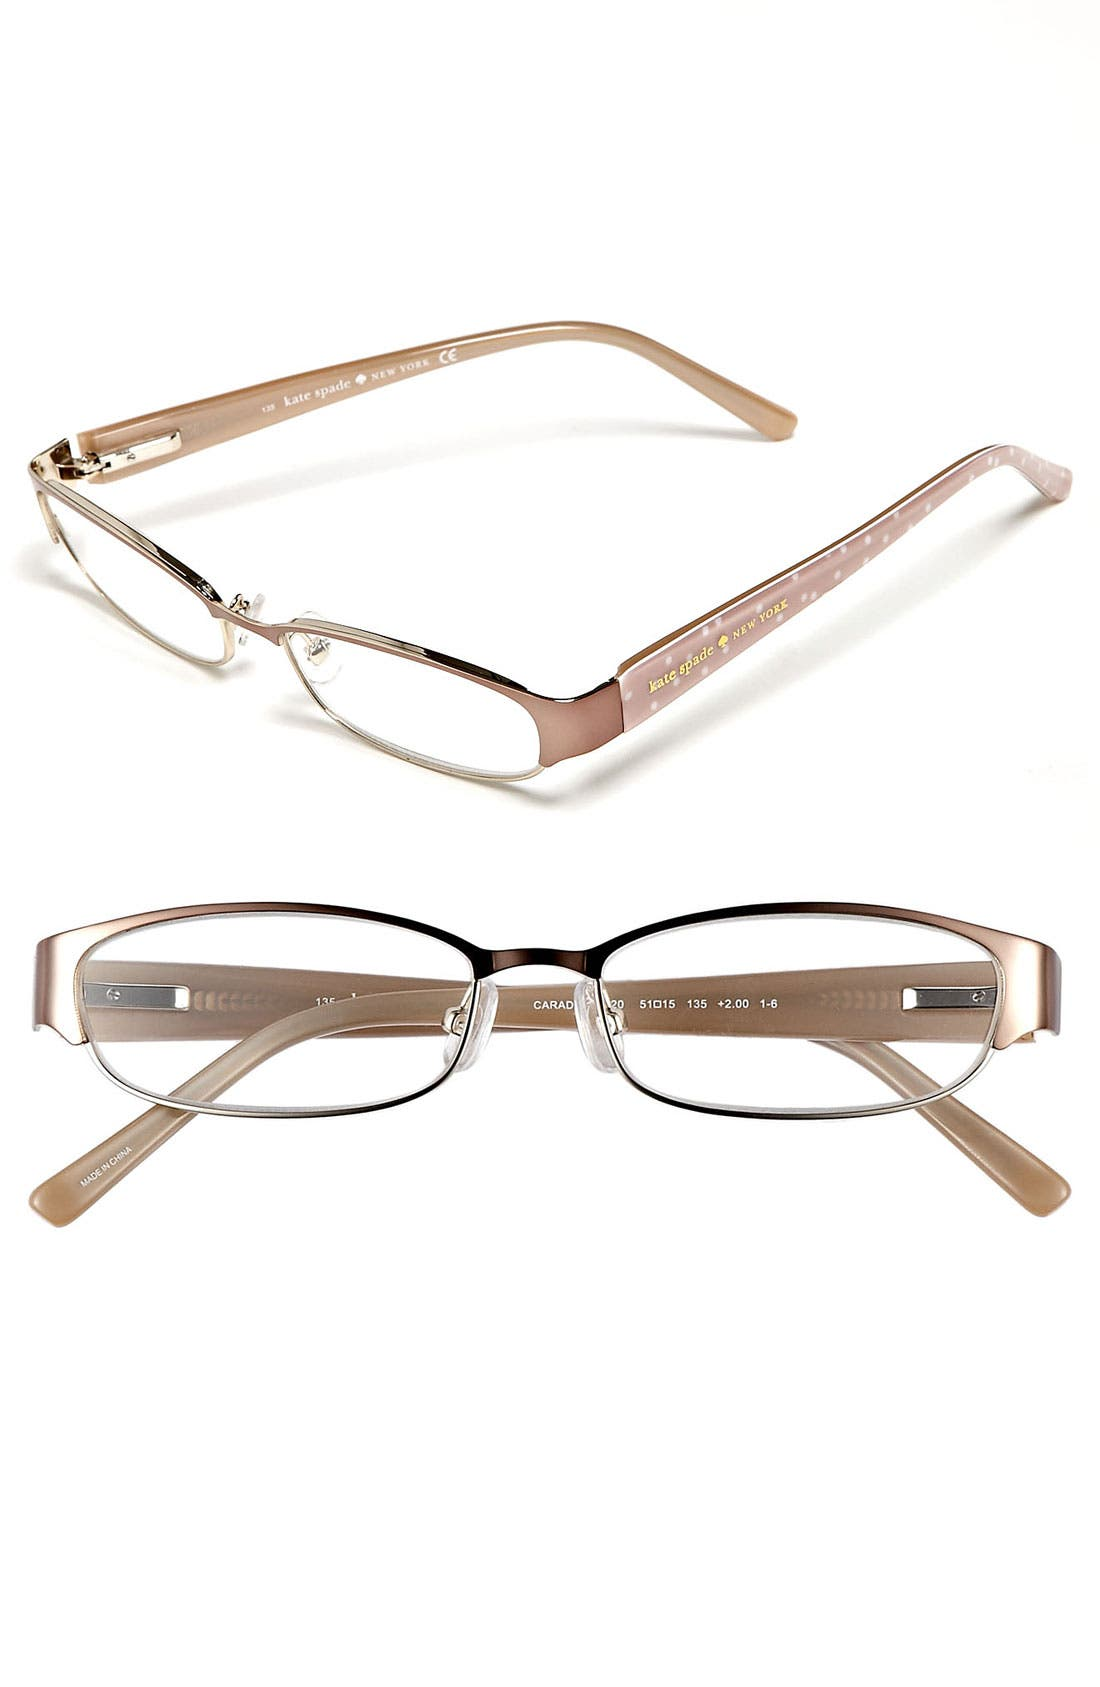 Main Image - kate spade new york 'caradee' reading glasses